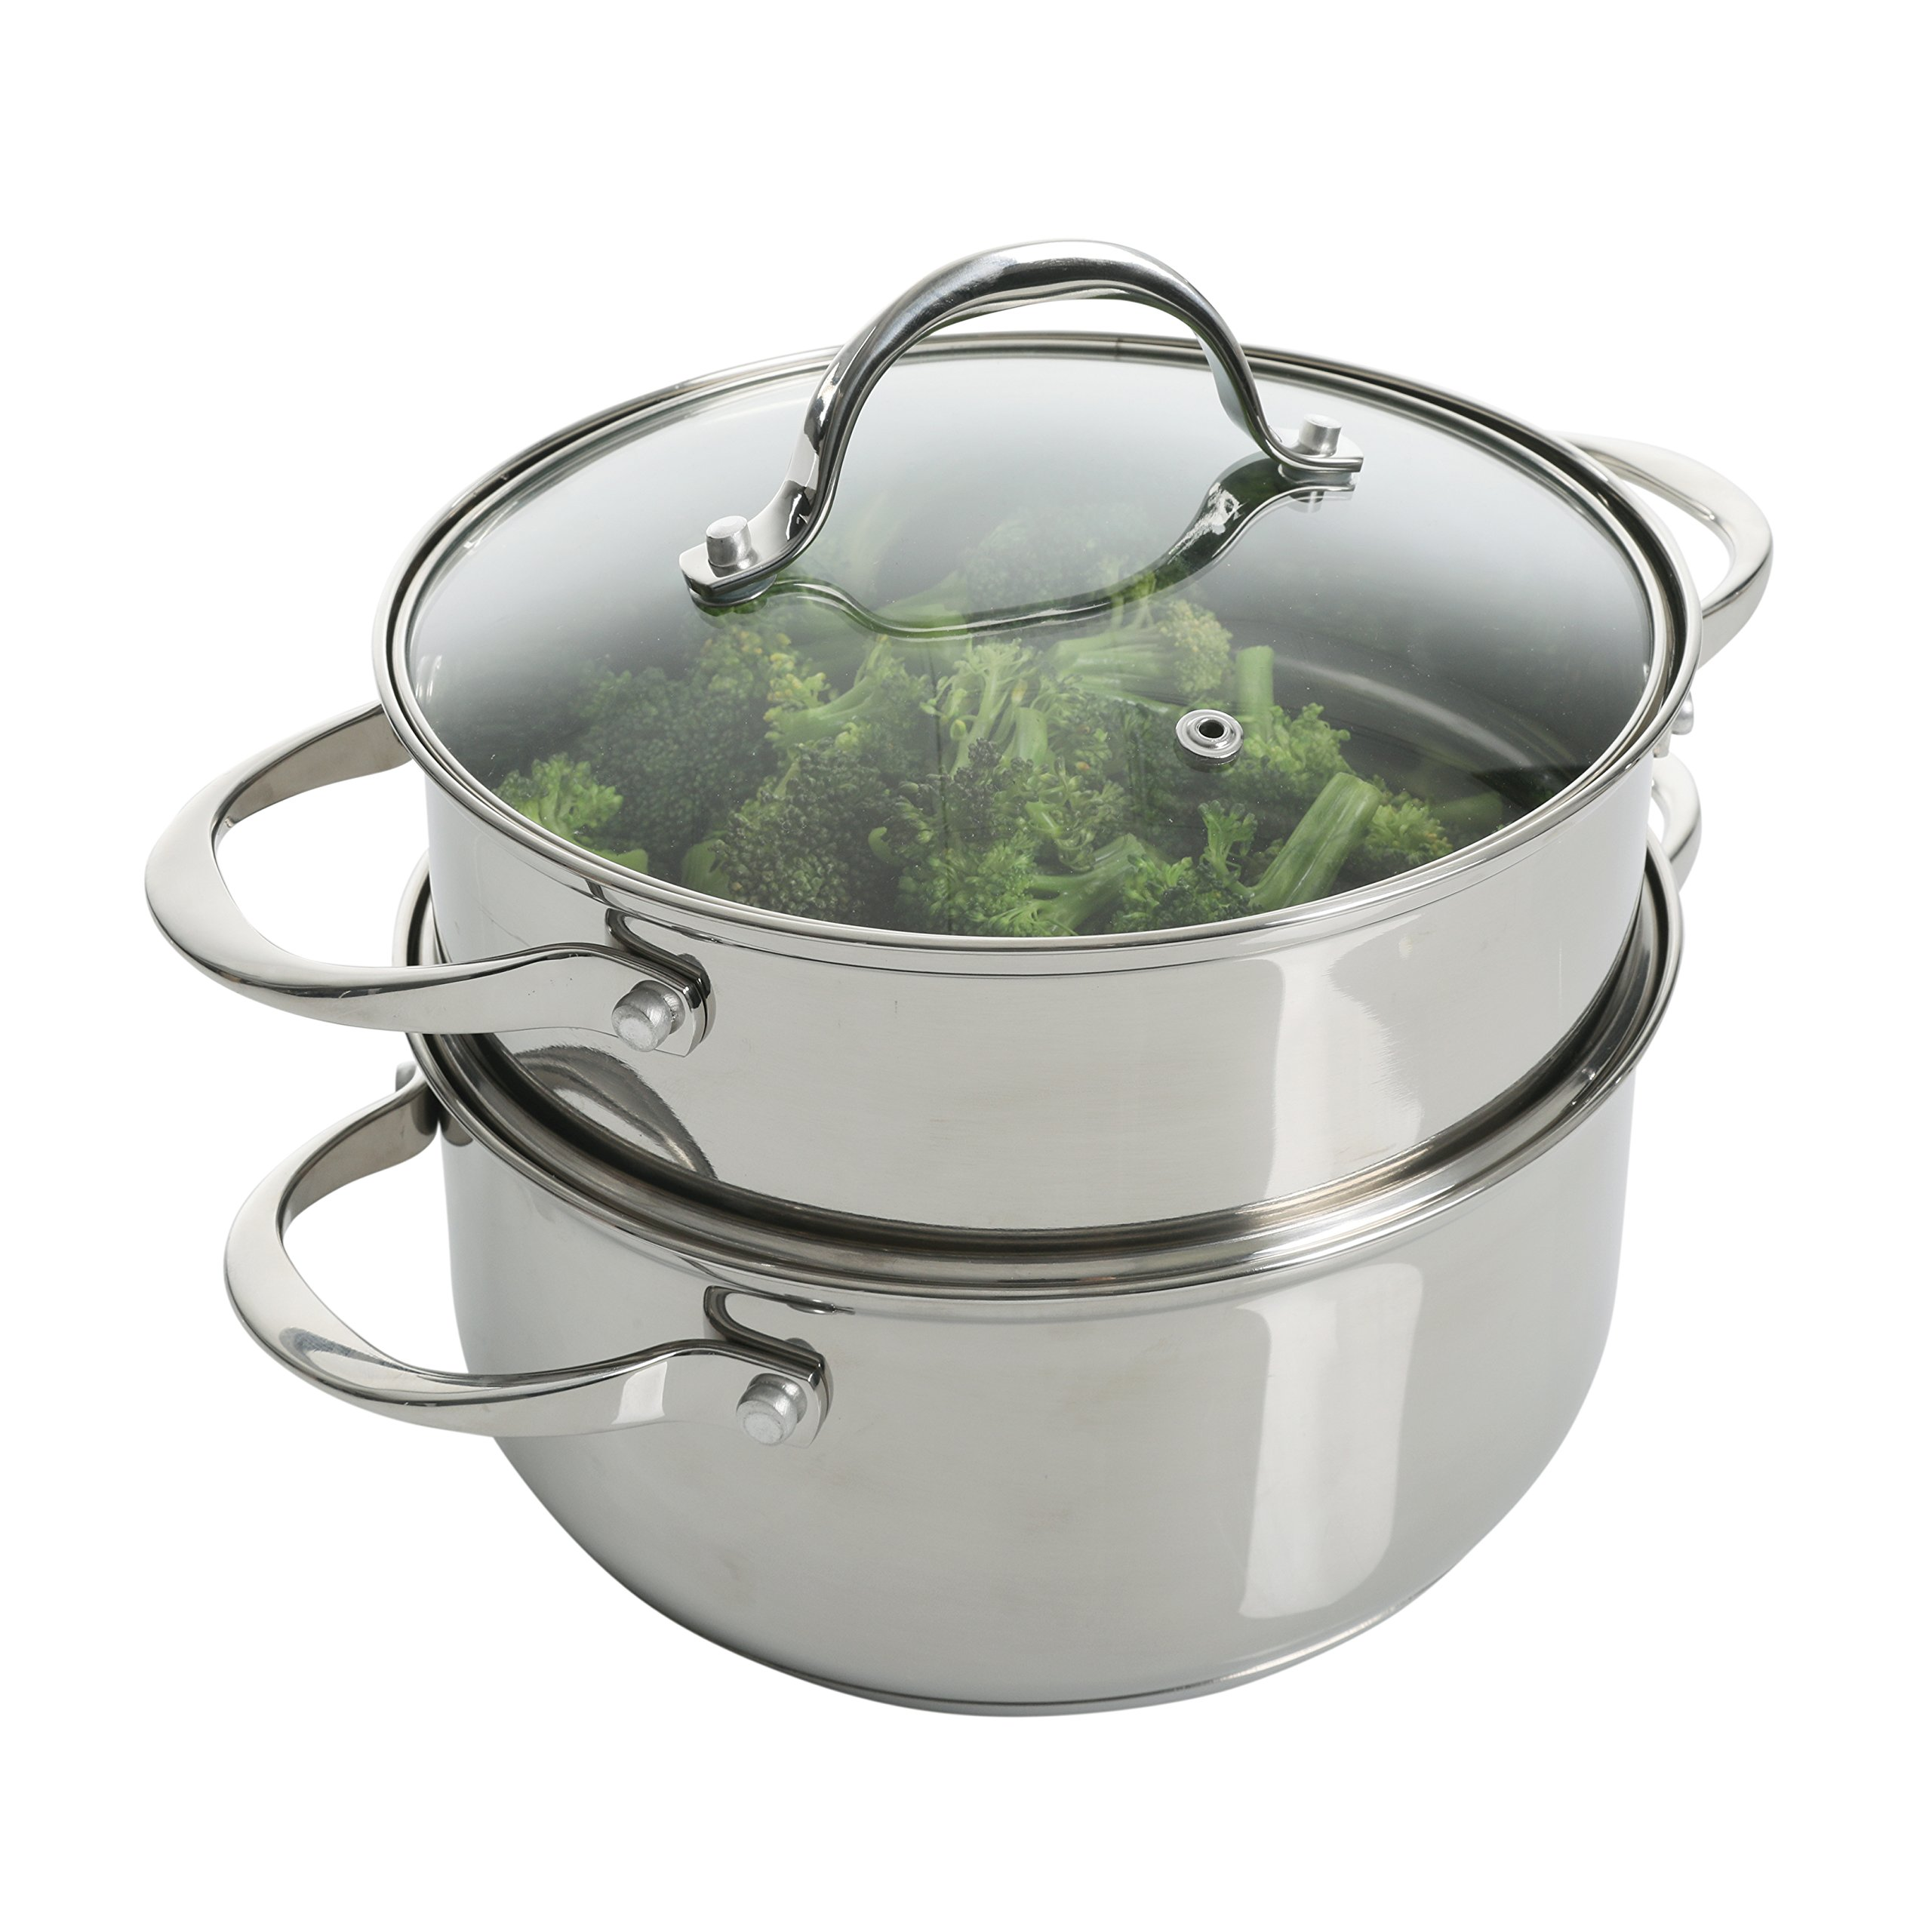 Weight Watchers 118316.03 Brenta Stainless Steel Dutch Oven W/Steamer and Lid, 3Qt, Silver